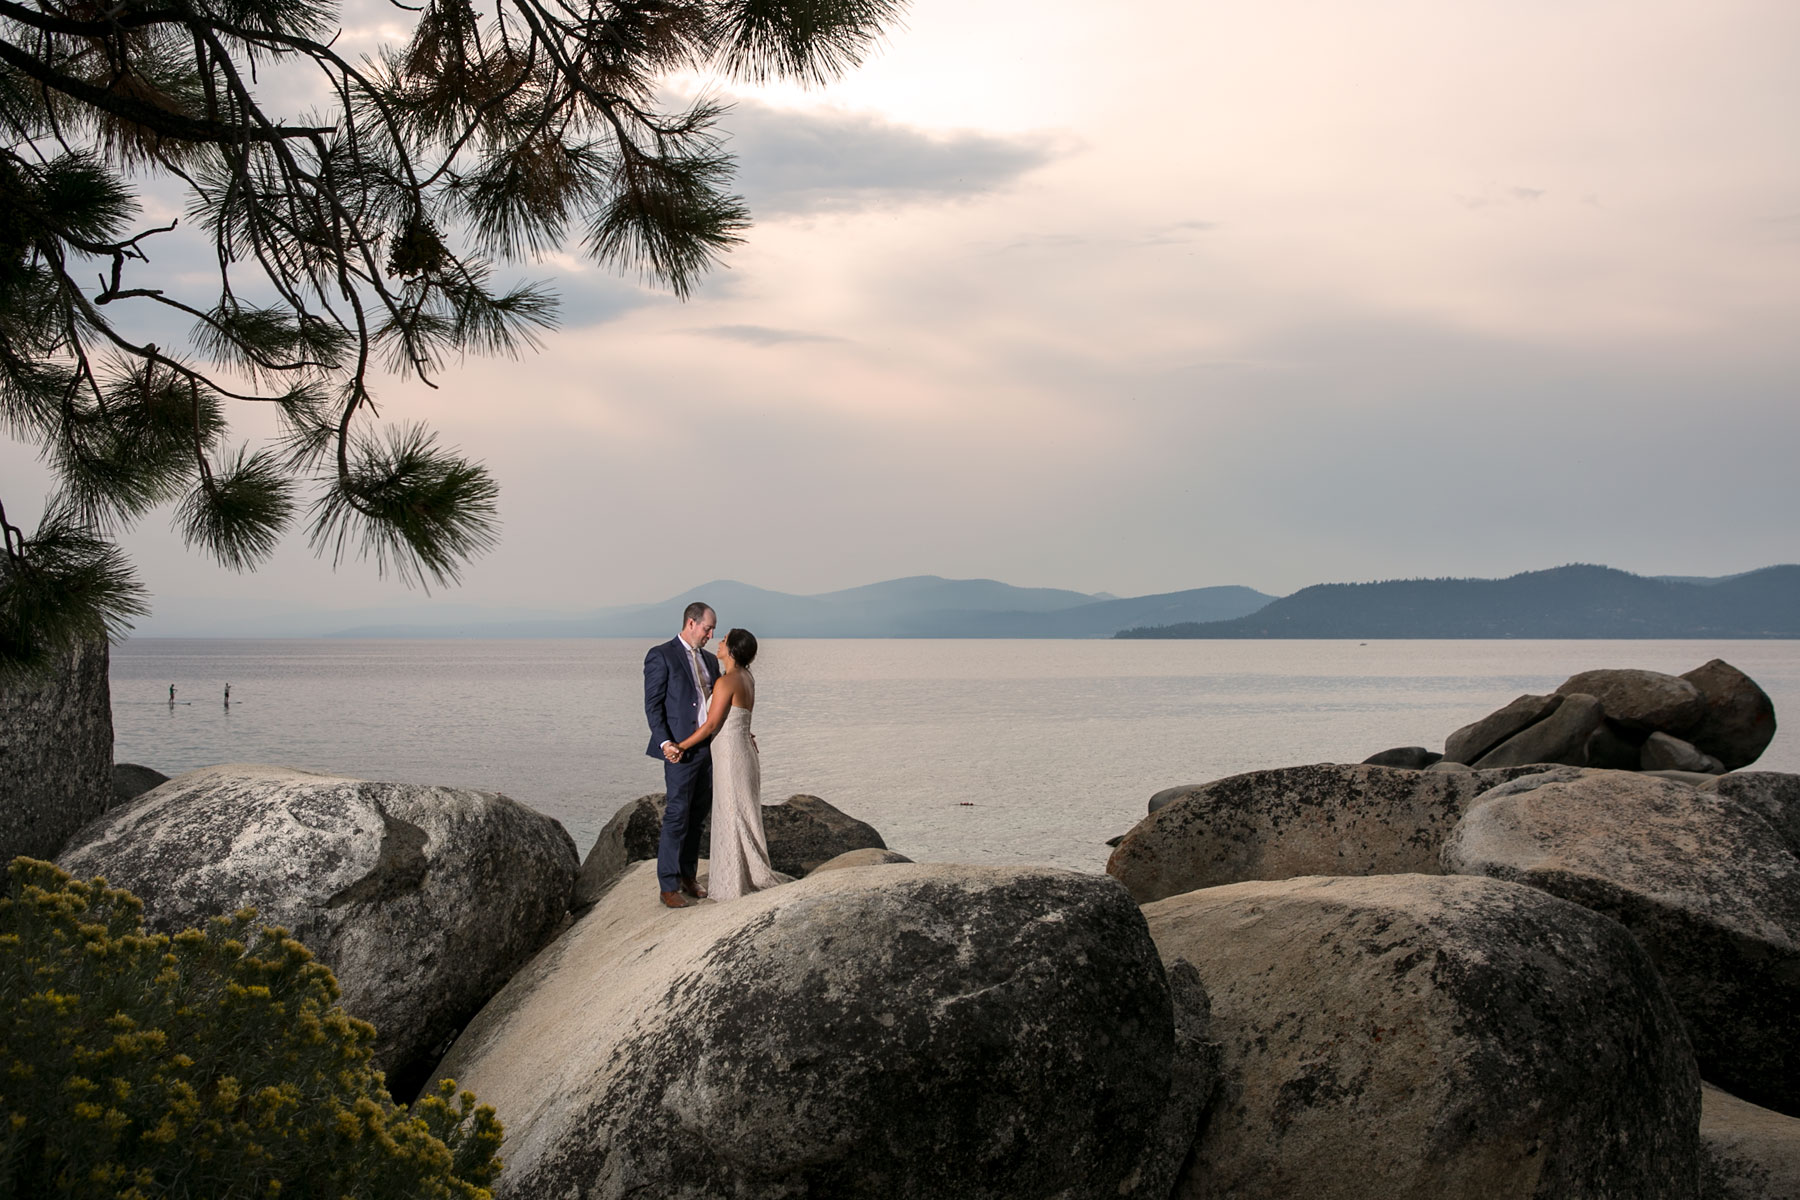 Lake-tahoe-weddings-bride-groom-5